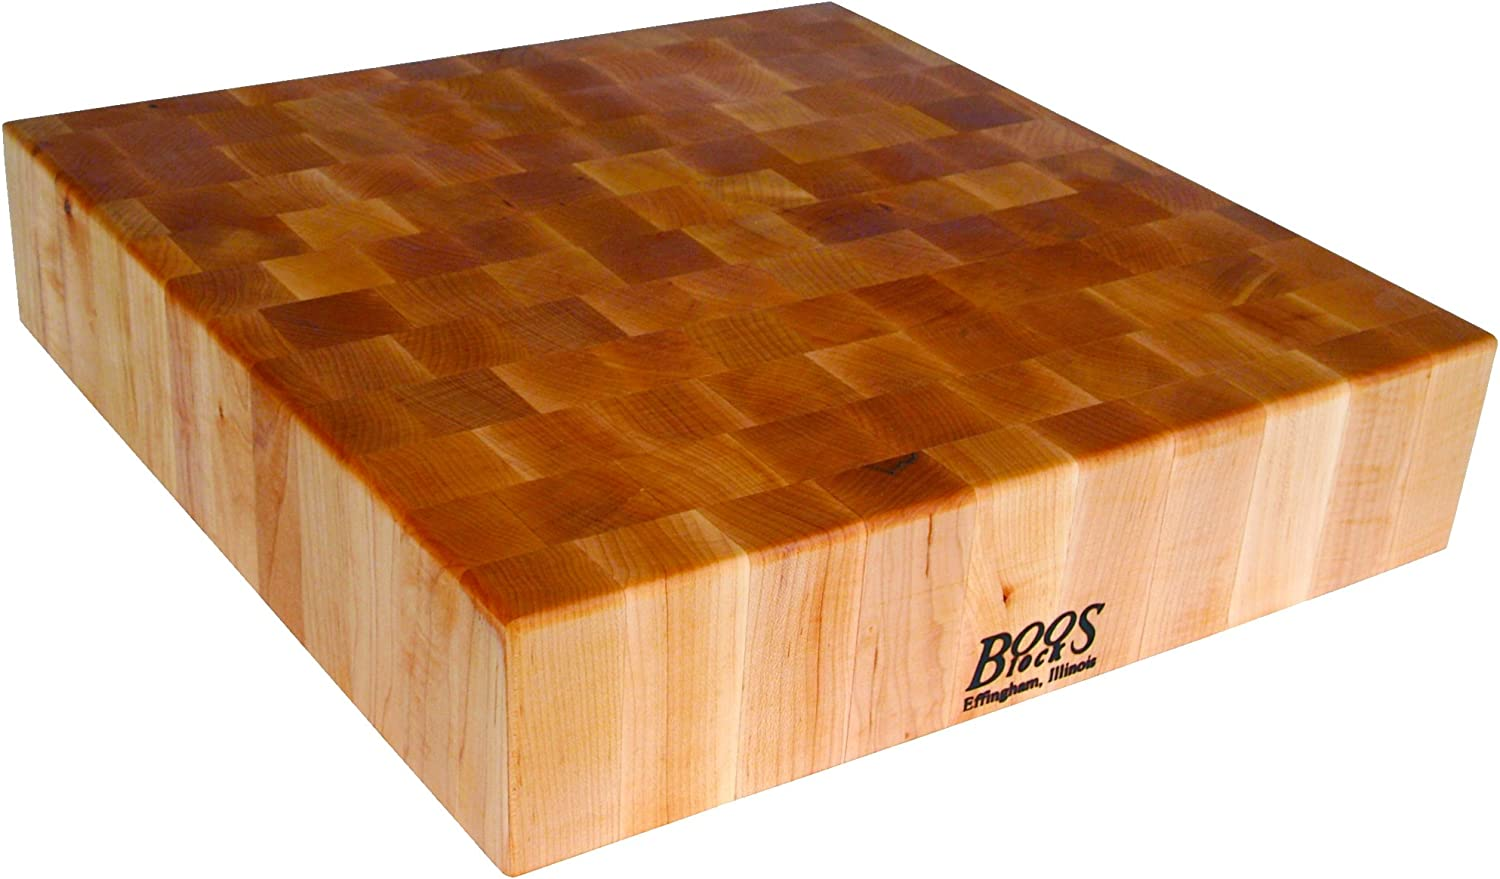 John Boos Block Bb03 Classic Reversible Maple Wood End Grain Chopping Block 30 Inches X 30 Inches X 6 Inches Cutting Boards Kitchen Dining